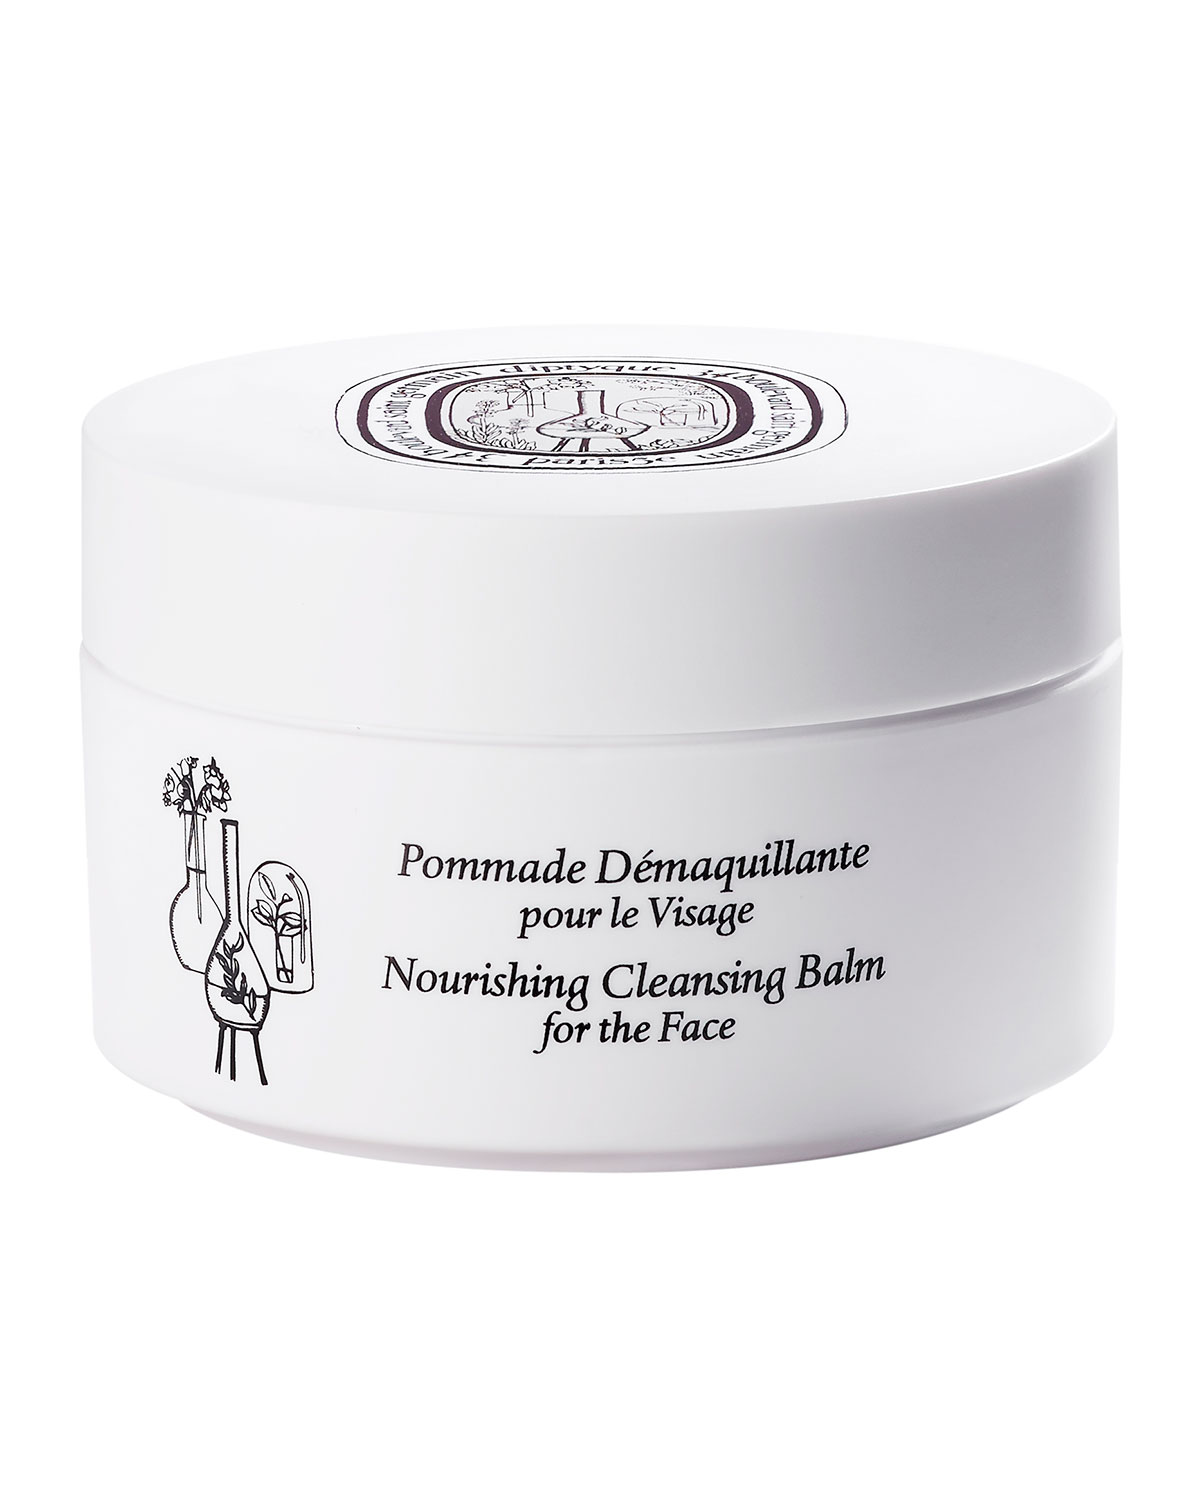 Diptyque 3.5 oz. Nourishing Cleansing Balm for the Face